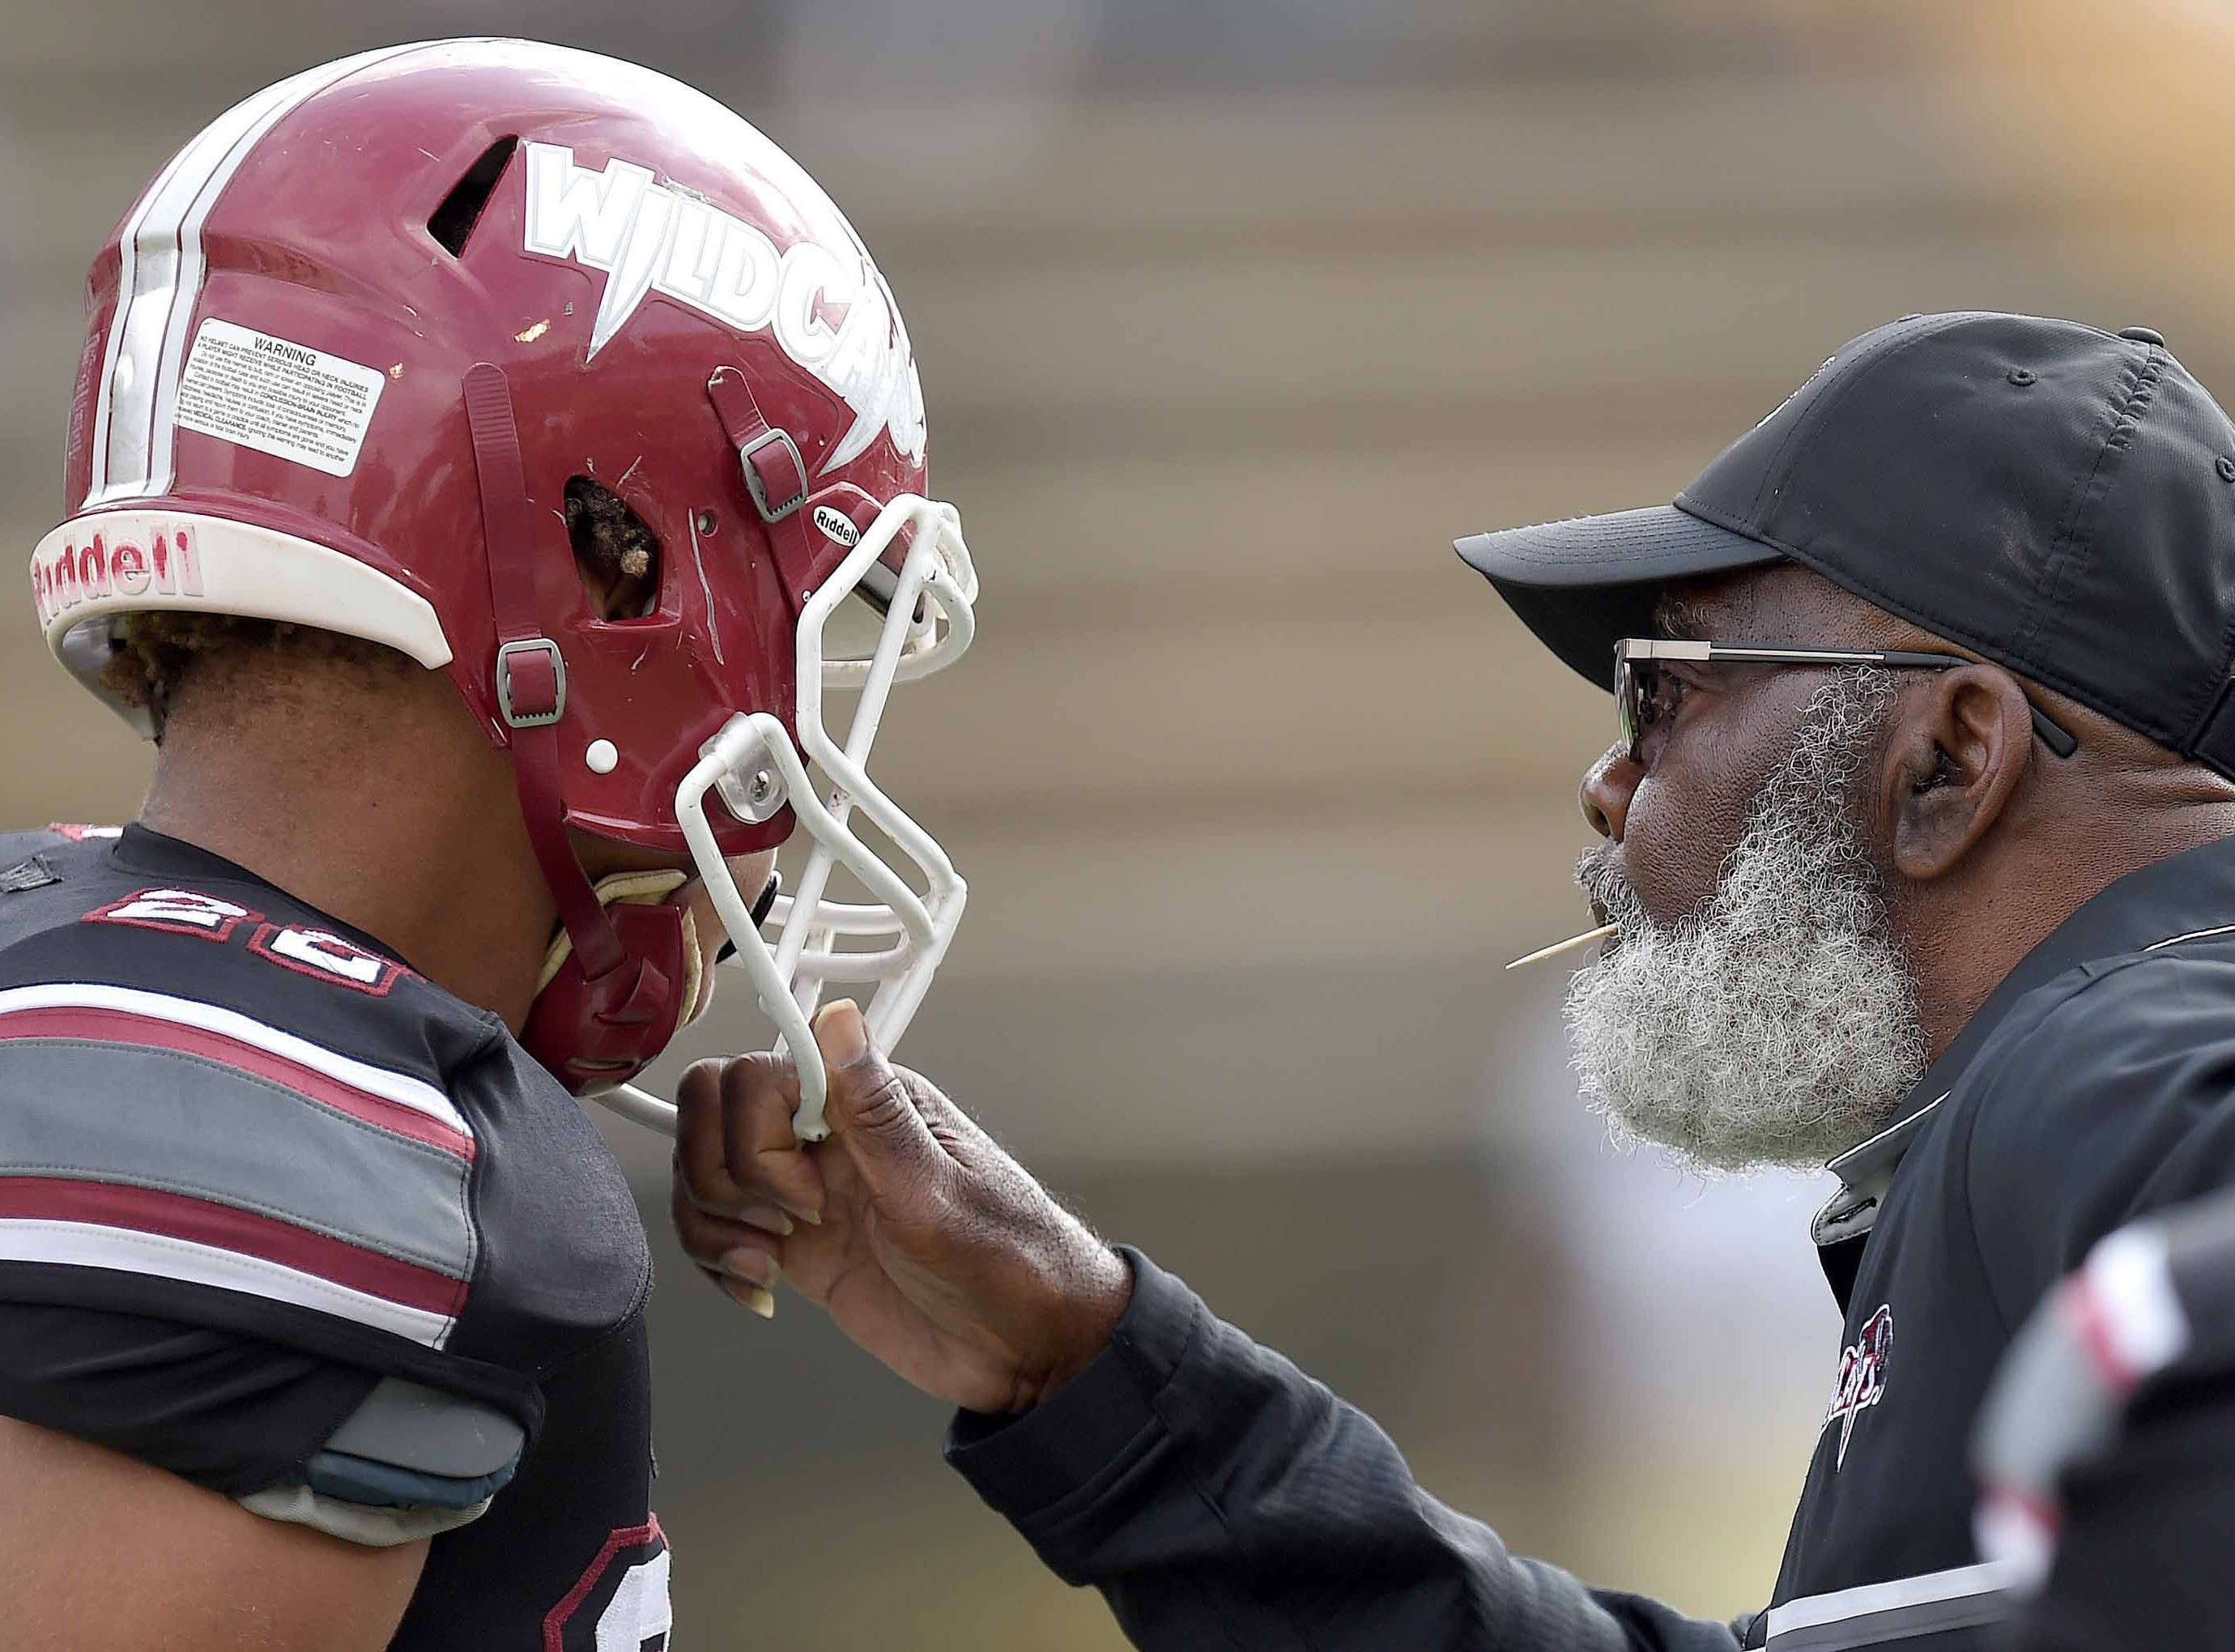 Louisville head coach M.C. Miller gets the attention of one of his players during a time out on Saturday, December 1, 2018, in the MHSAA BlueCross BlueShield Gridiron Classic High School Football Championships in M.M. Roberts Stadium on the University of Southern Mississippi campus in Hattiesburg, Miss.